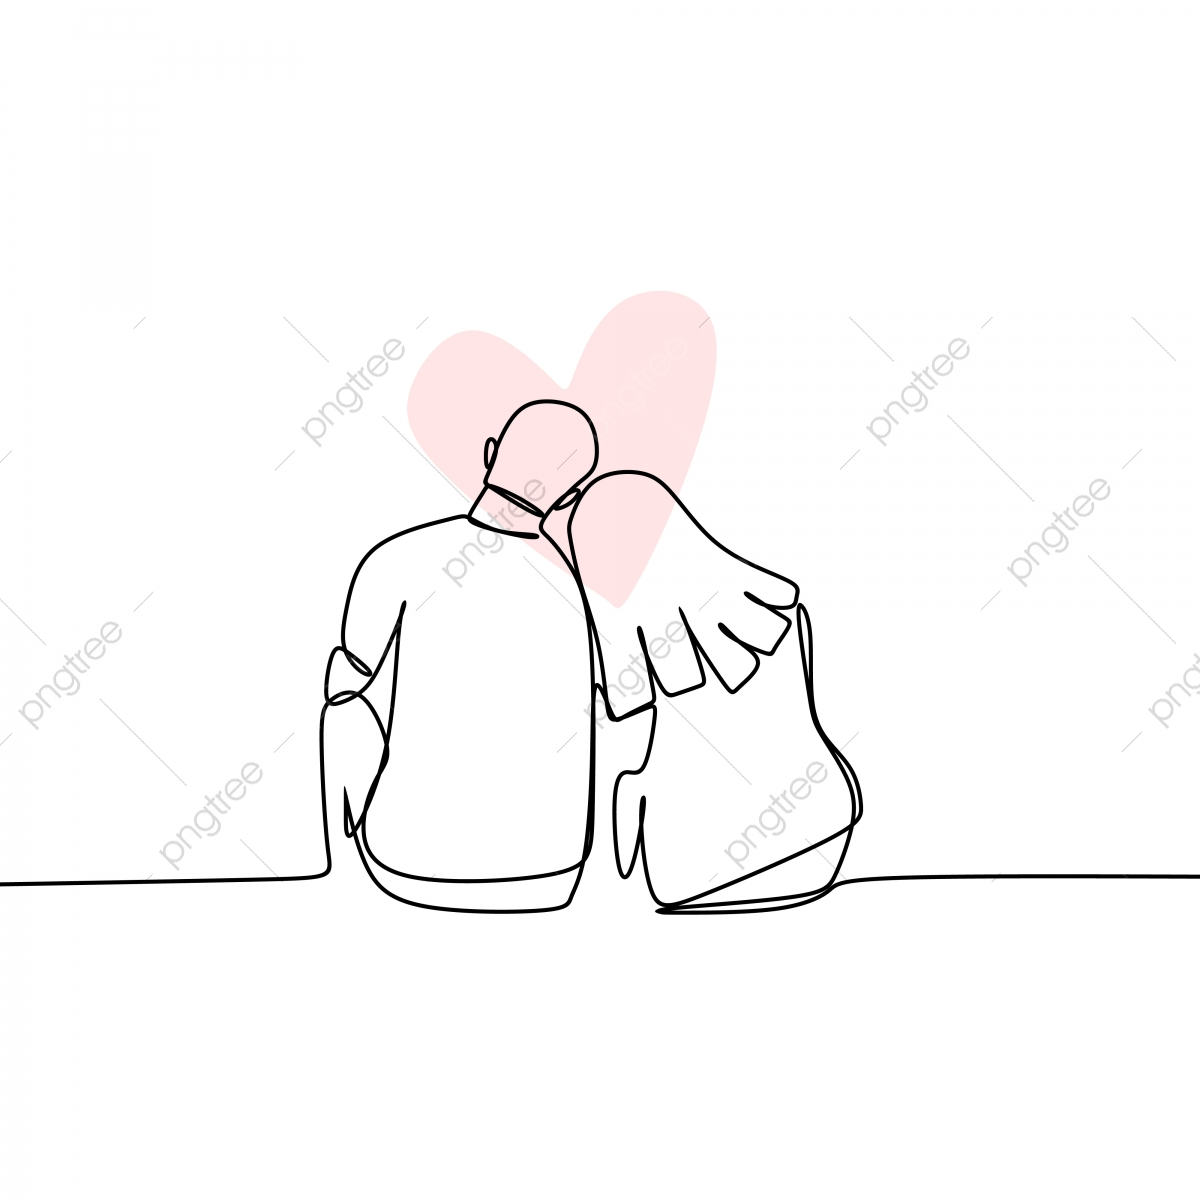 Concept Of Romantic Couple In Love Continuous Line Drawing Vector